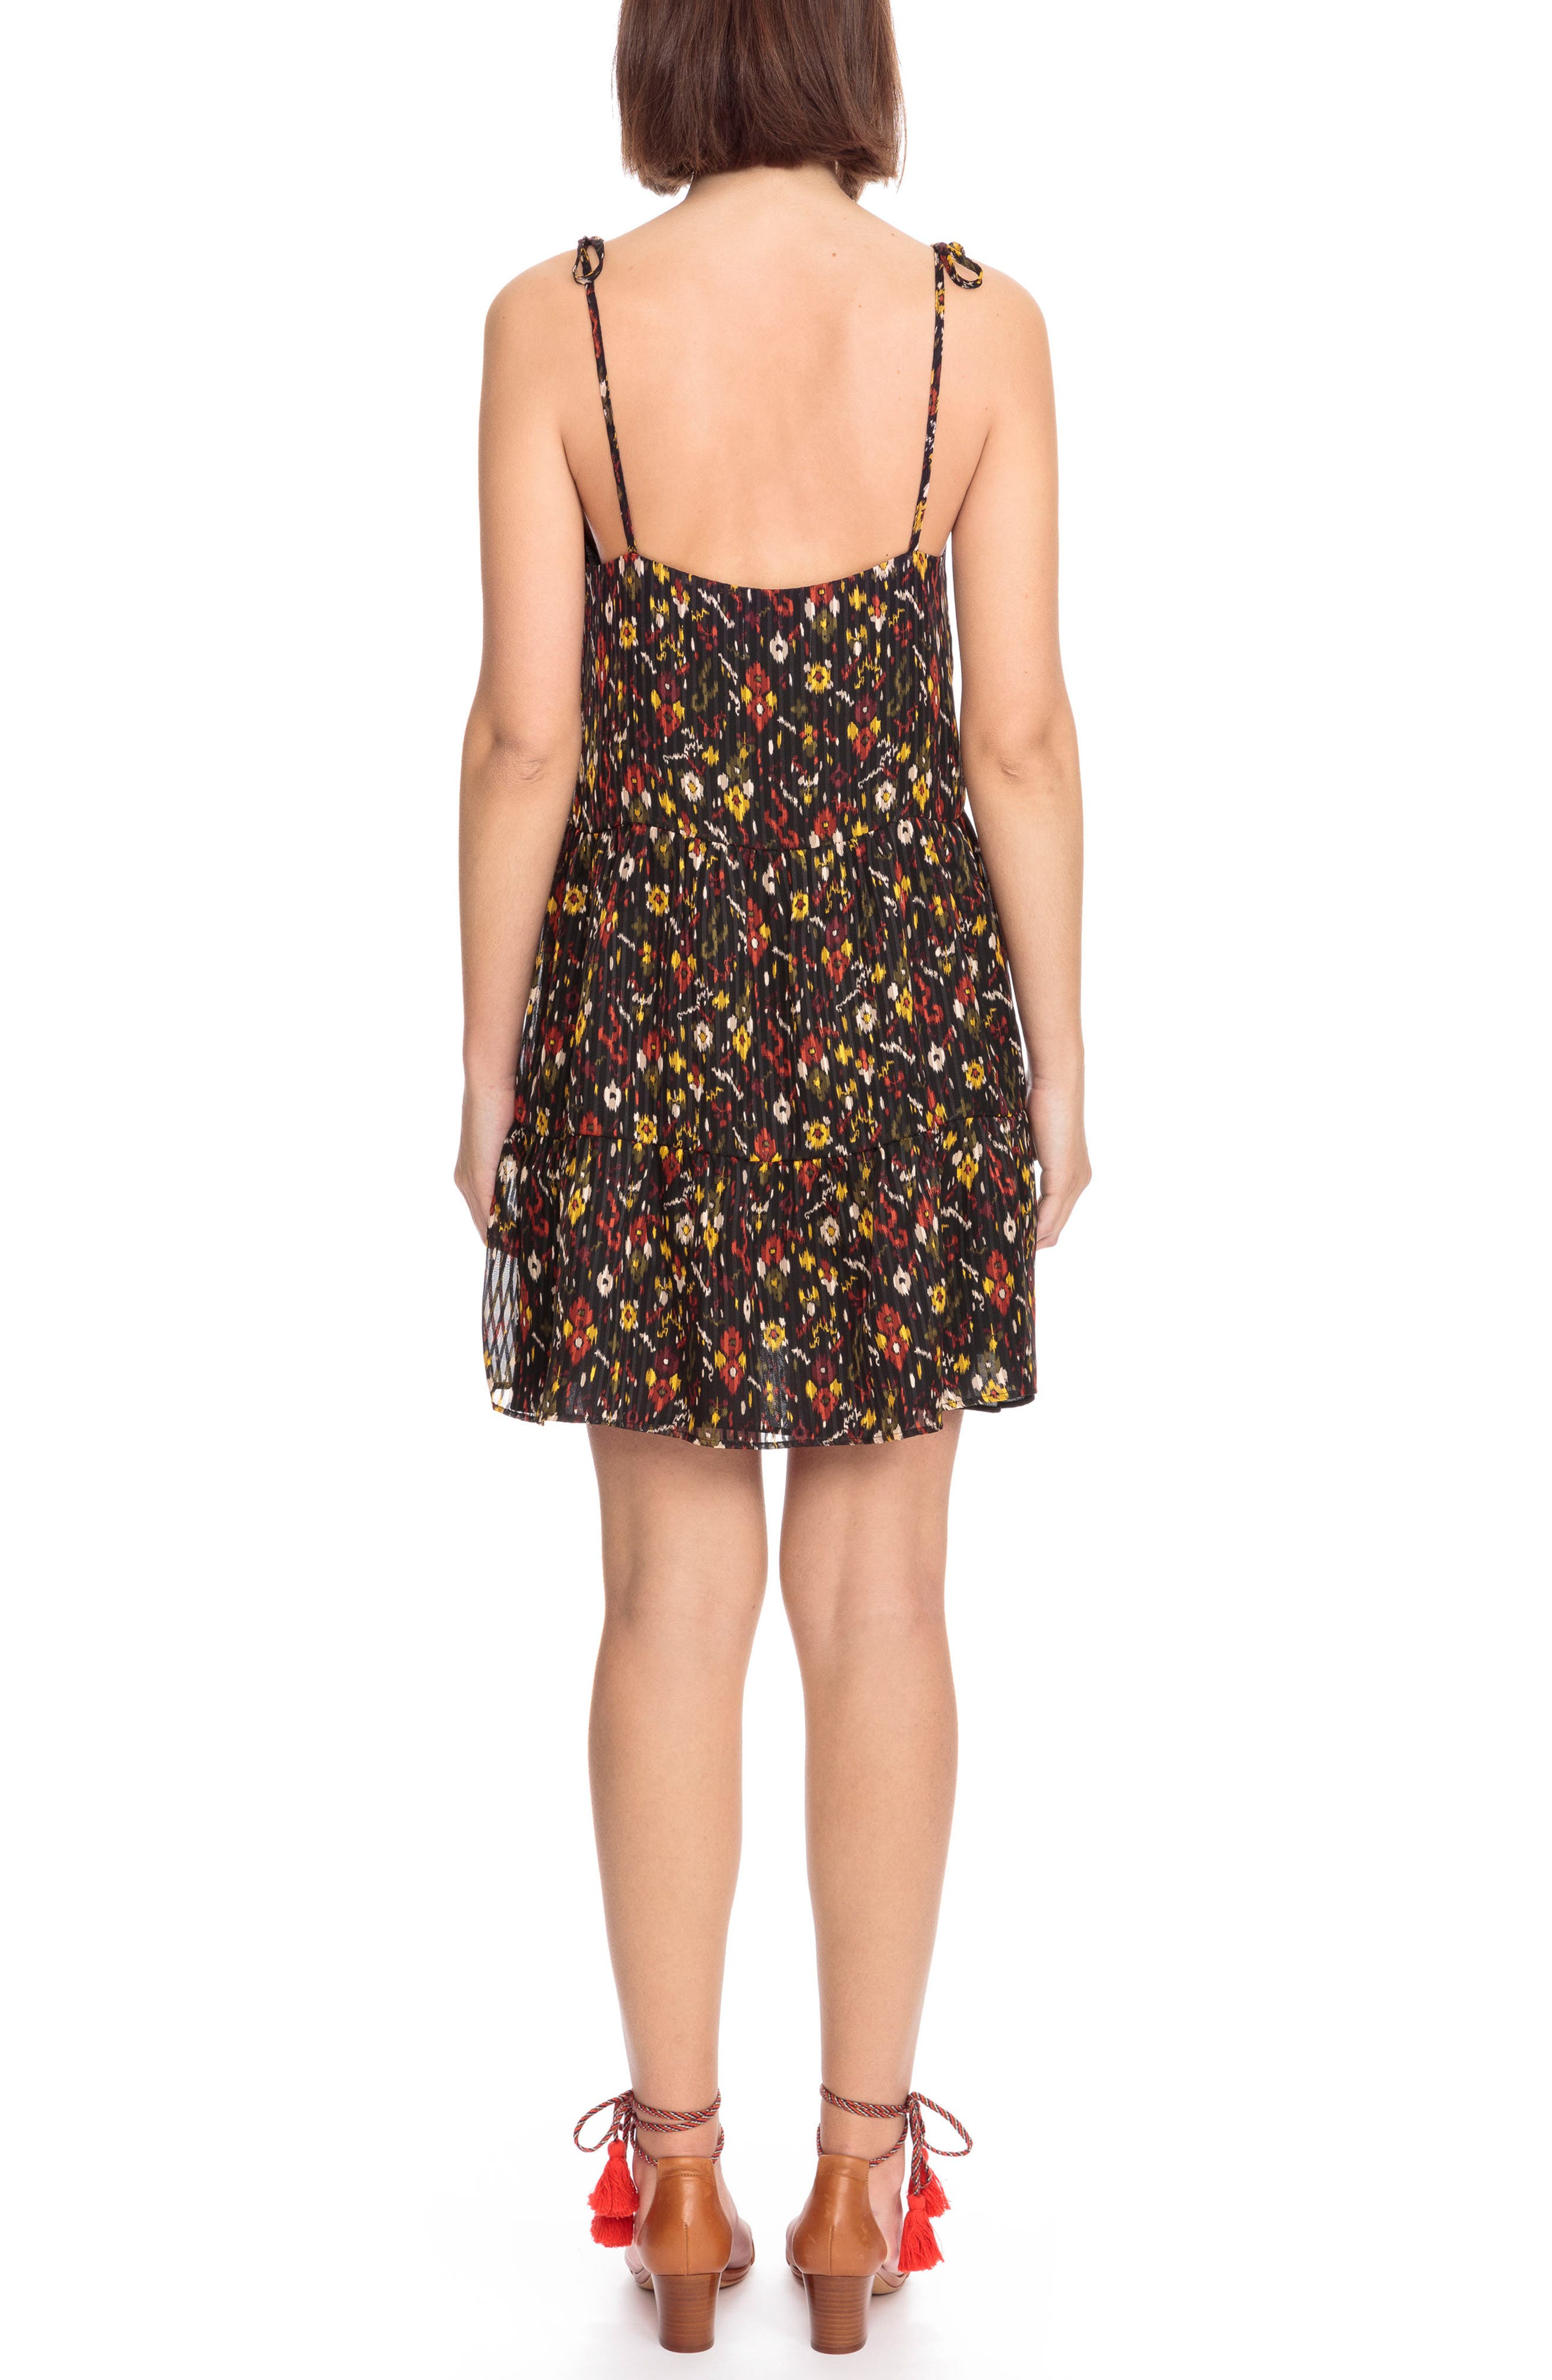 Felicie Floral Tie Strap Dress,                             Alternate thumbnail 2, color,                             Boho Print Red